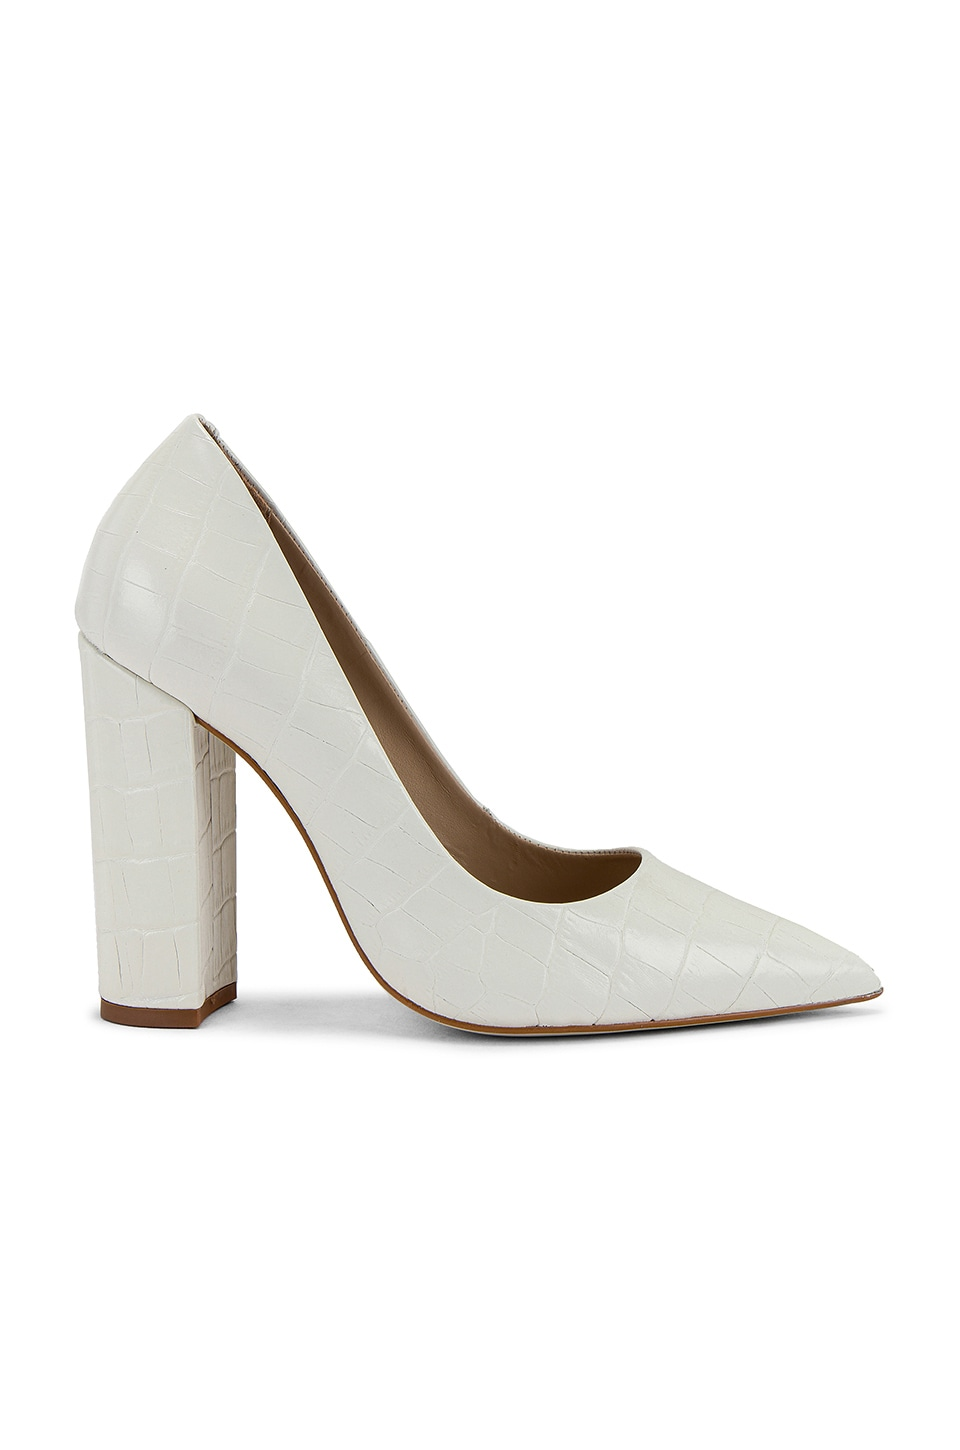 Steve Madden Prance Pump in White Crocodile